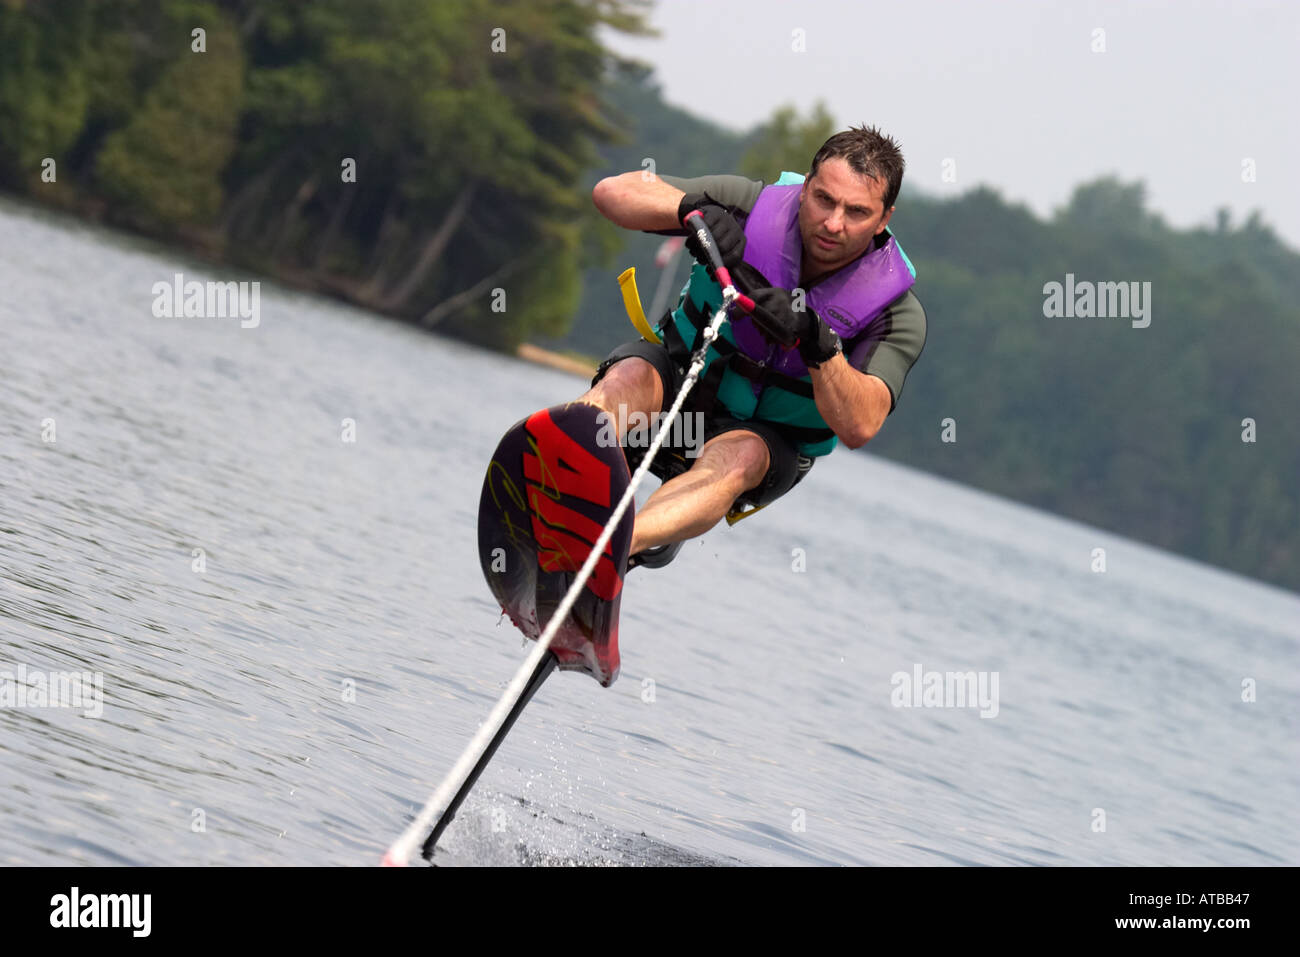 man waterskiing extreme sport air chair stock photo 1686342 alamy